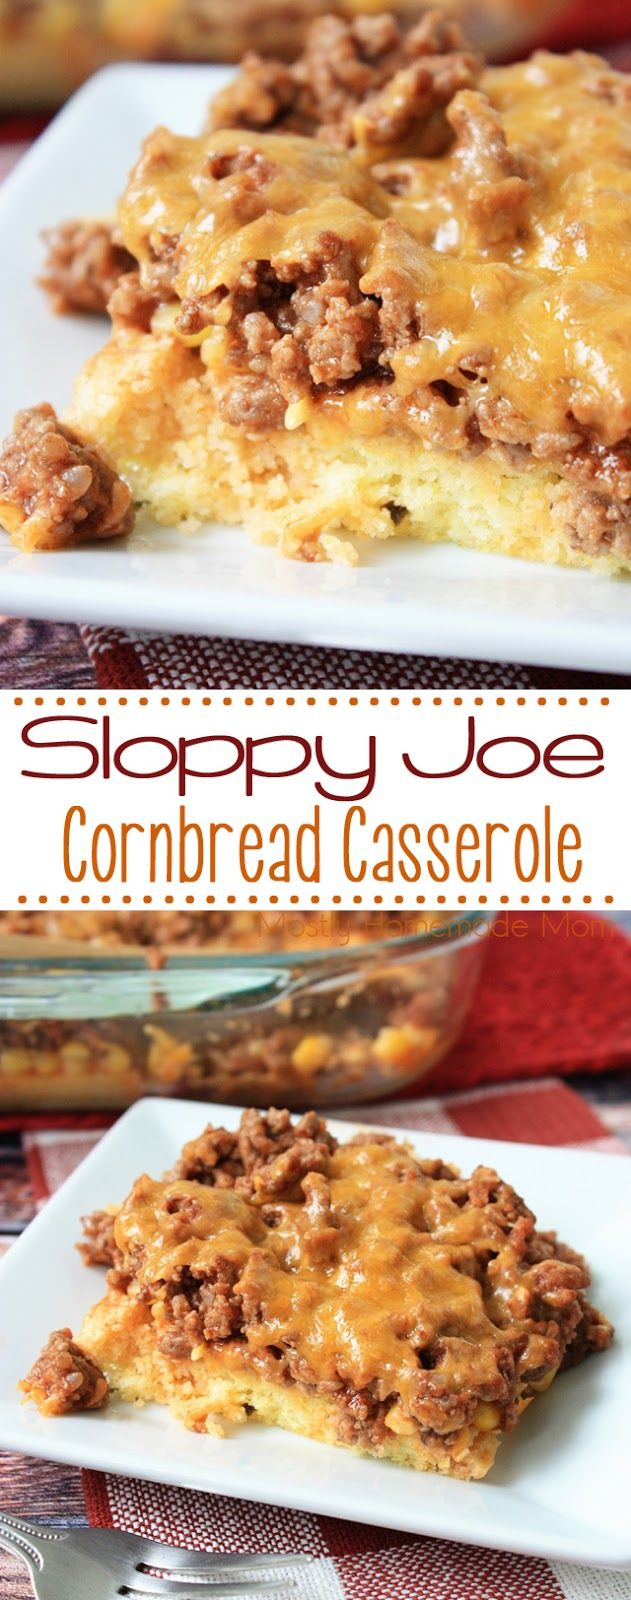 Sloppy Joe Cornbread Casserole - your new family favorite meal! Homemade skillet sloppy joes top delicious cornbread - this casserole freezes well, too! #ad